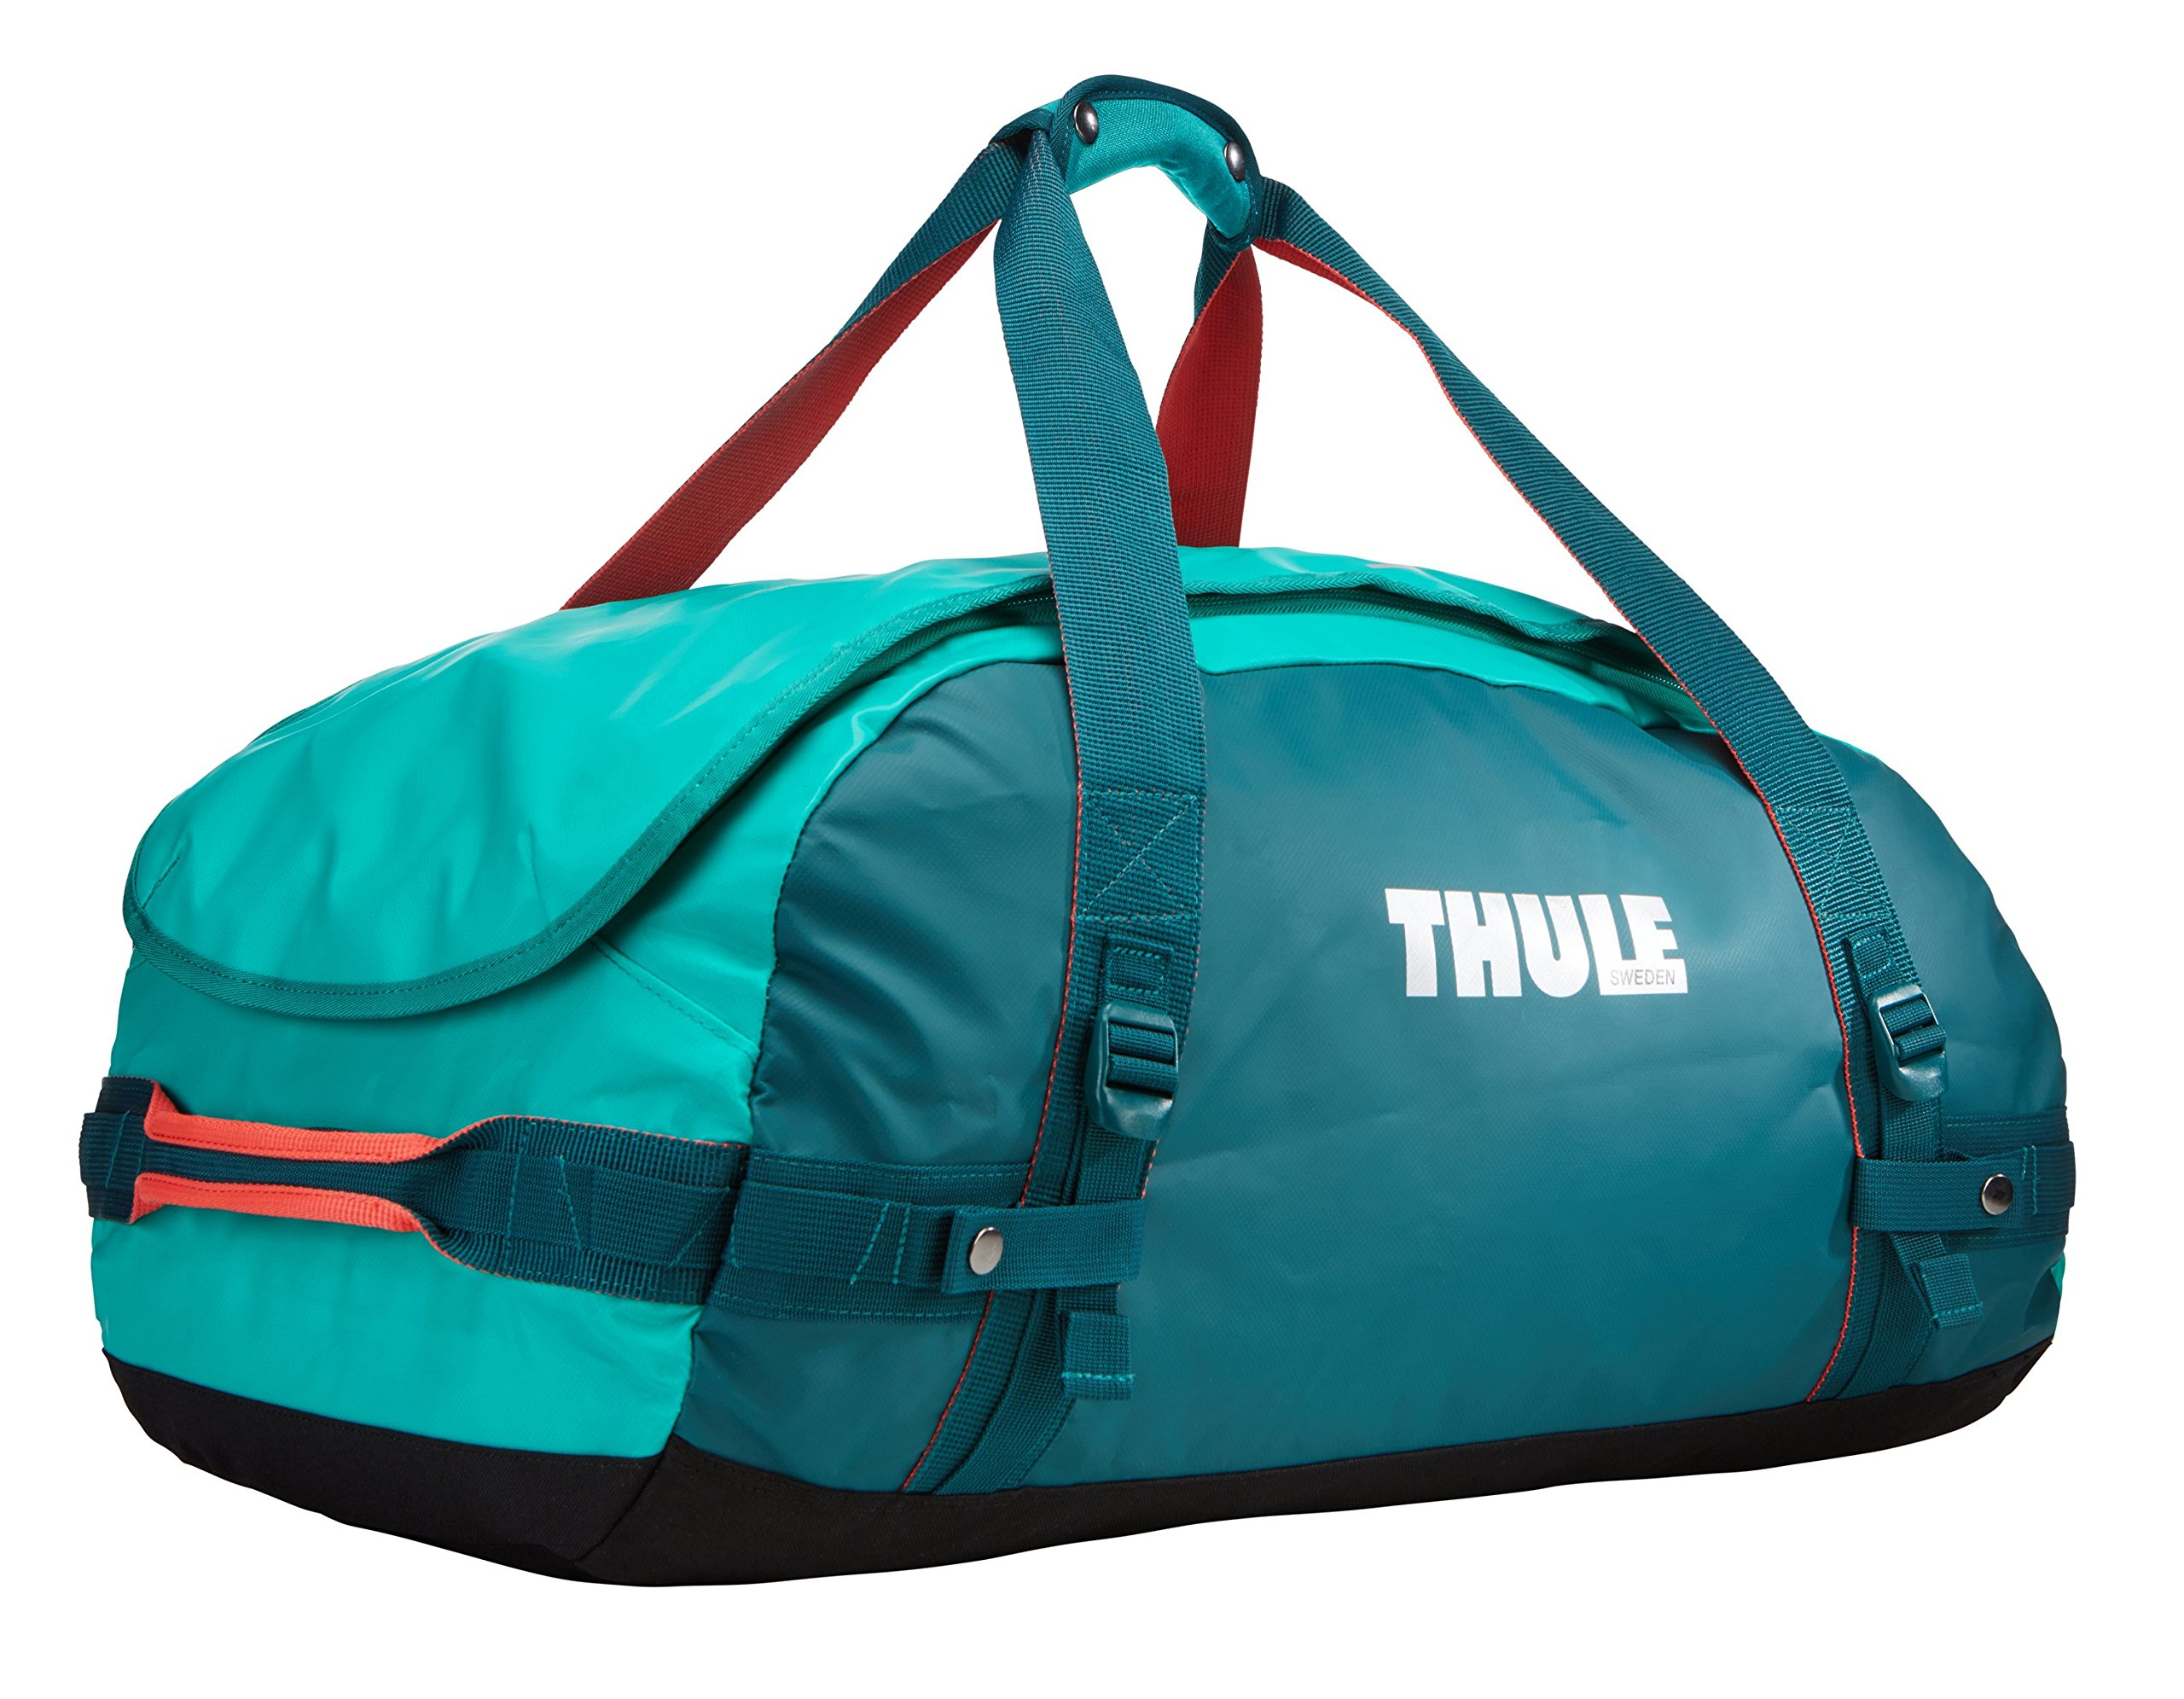 Thule Chasm Bag, Deep Teal/Bluegrass, 70 L